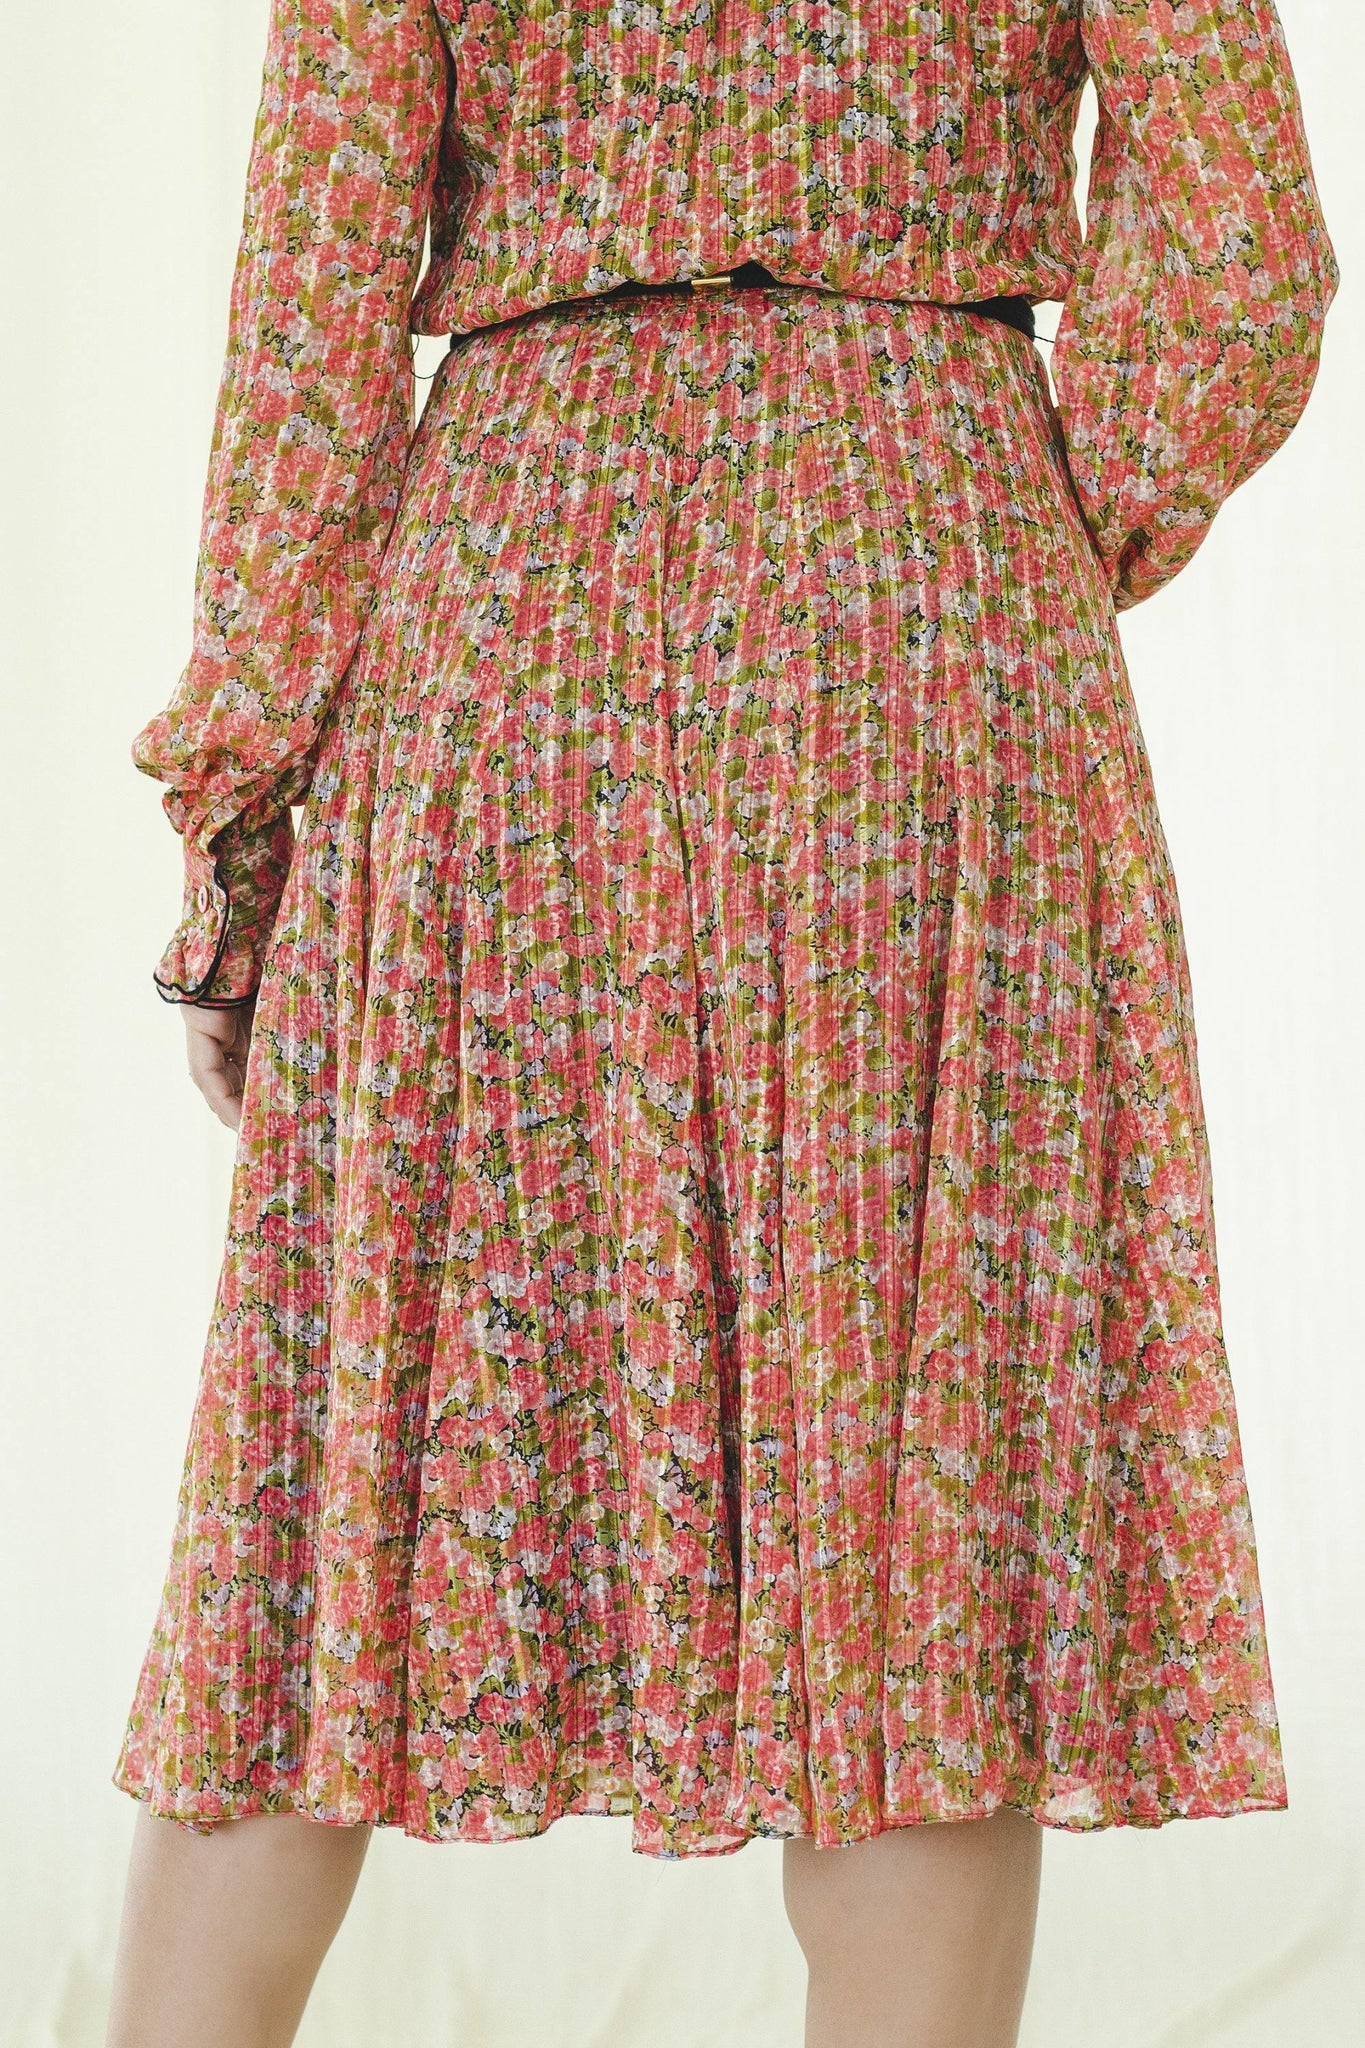 1980s Japanese vintage ruffle neck chiffon dress with red and peach floral print - Sugar & Cream Vintage